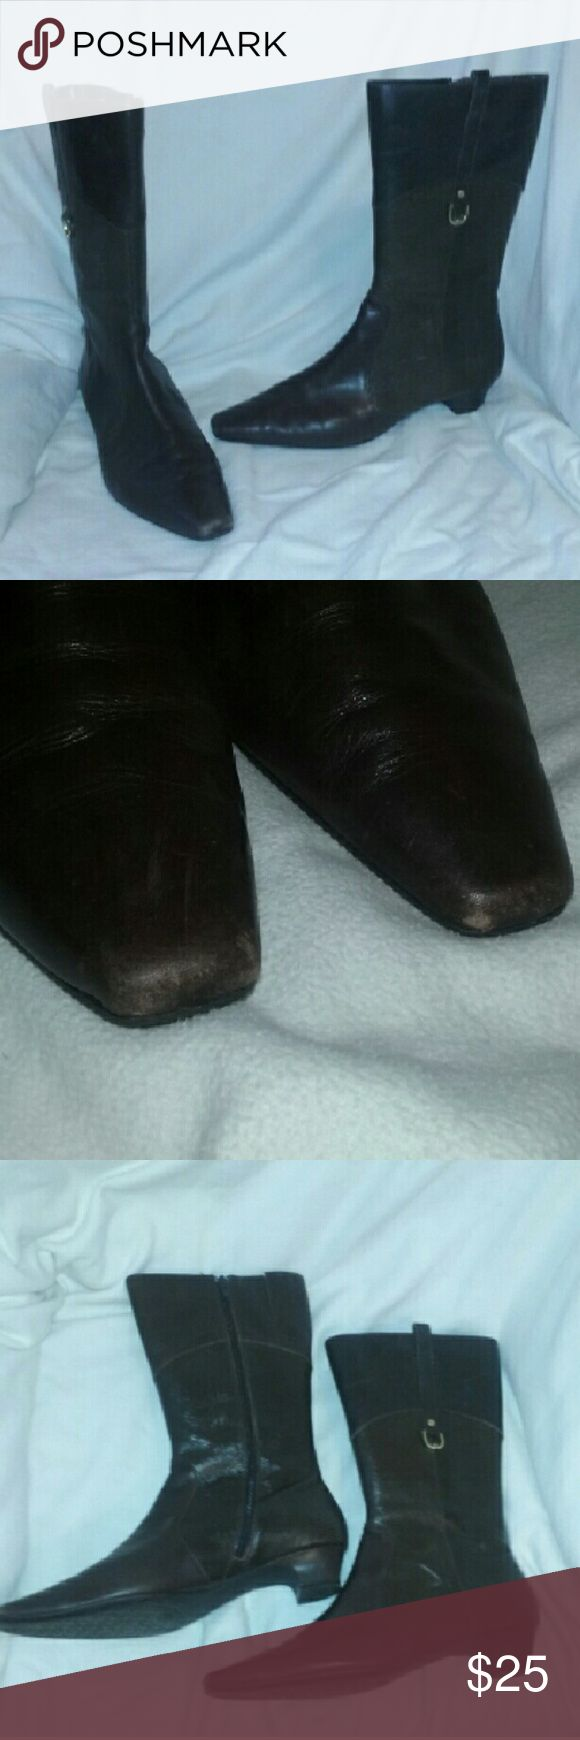 "Etienne Aigner Boots Brown Leather Mid Calf 8M Etienne Aigner Boots Brown Leather Mid Calf Womens 8M  Style name E-DAVIN. Overall good condition. Light scratching (from normal wear) on genuine leather uppers and wear at toes. Approx 1 1/2"" heel. Great find. Etienne Aigner Shoes"